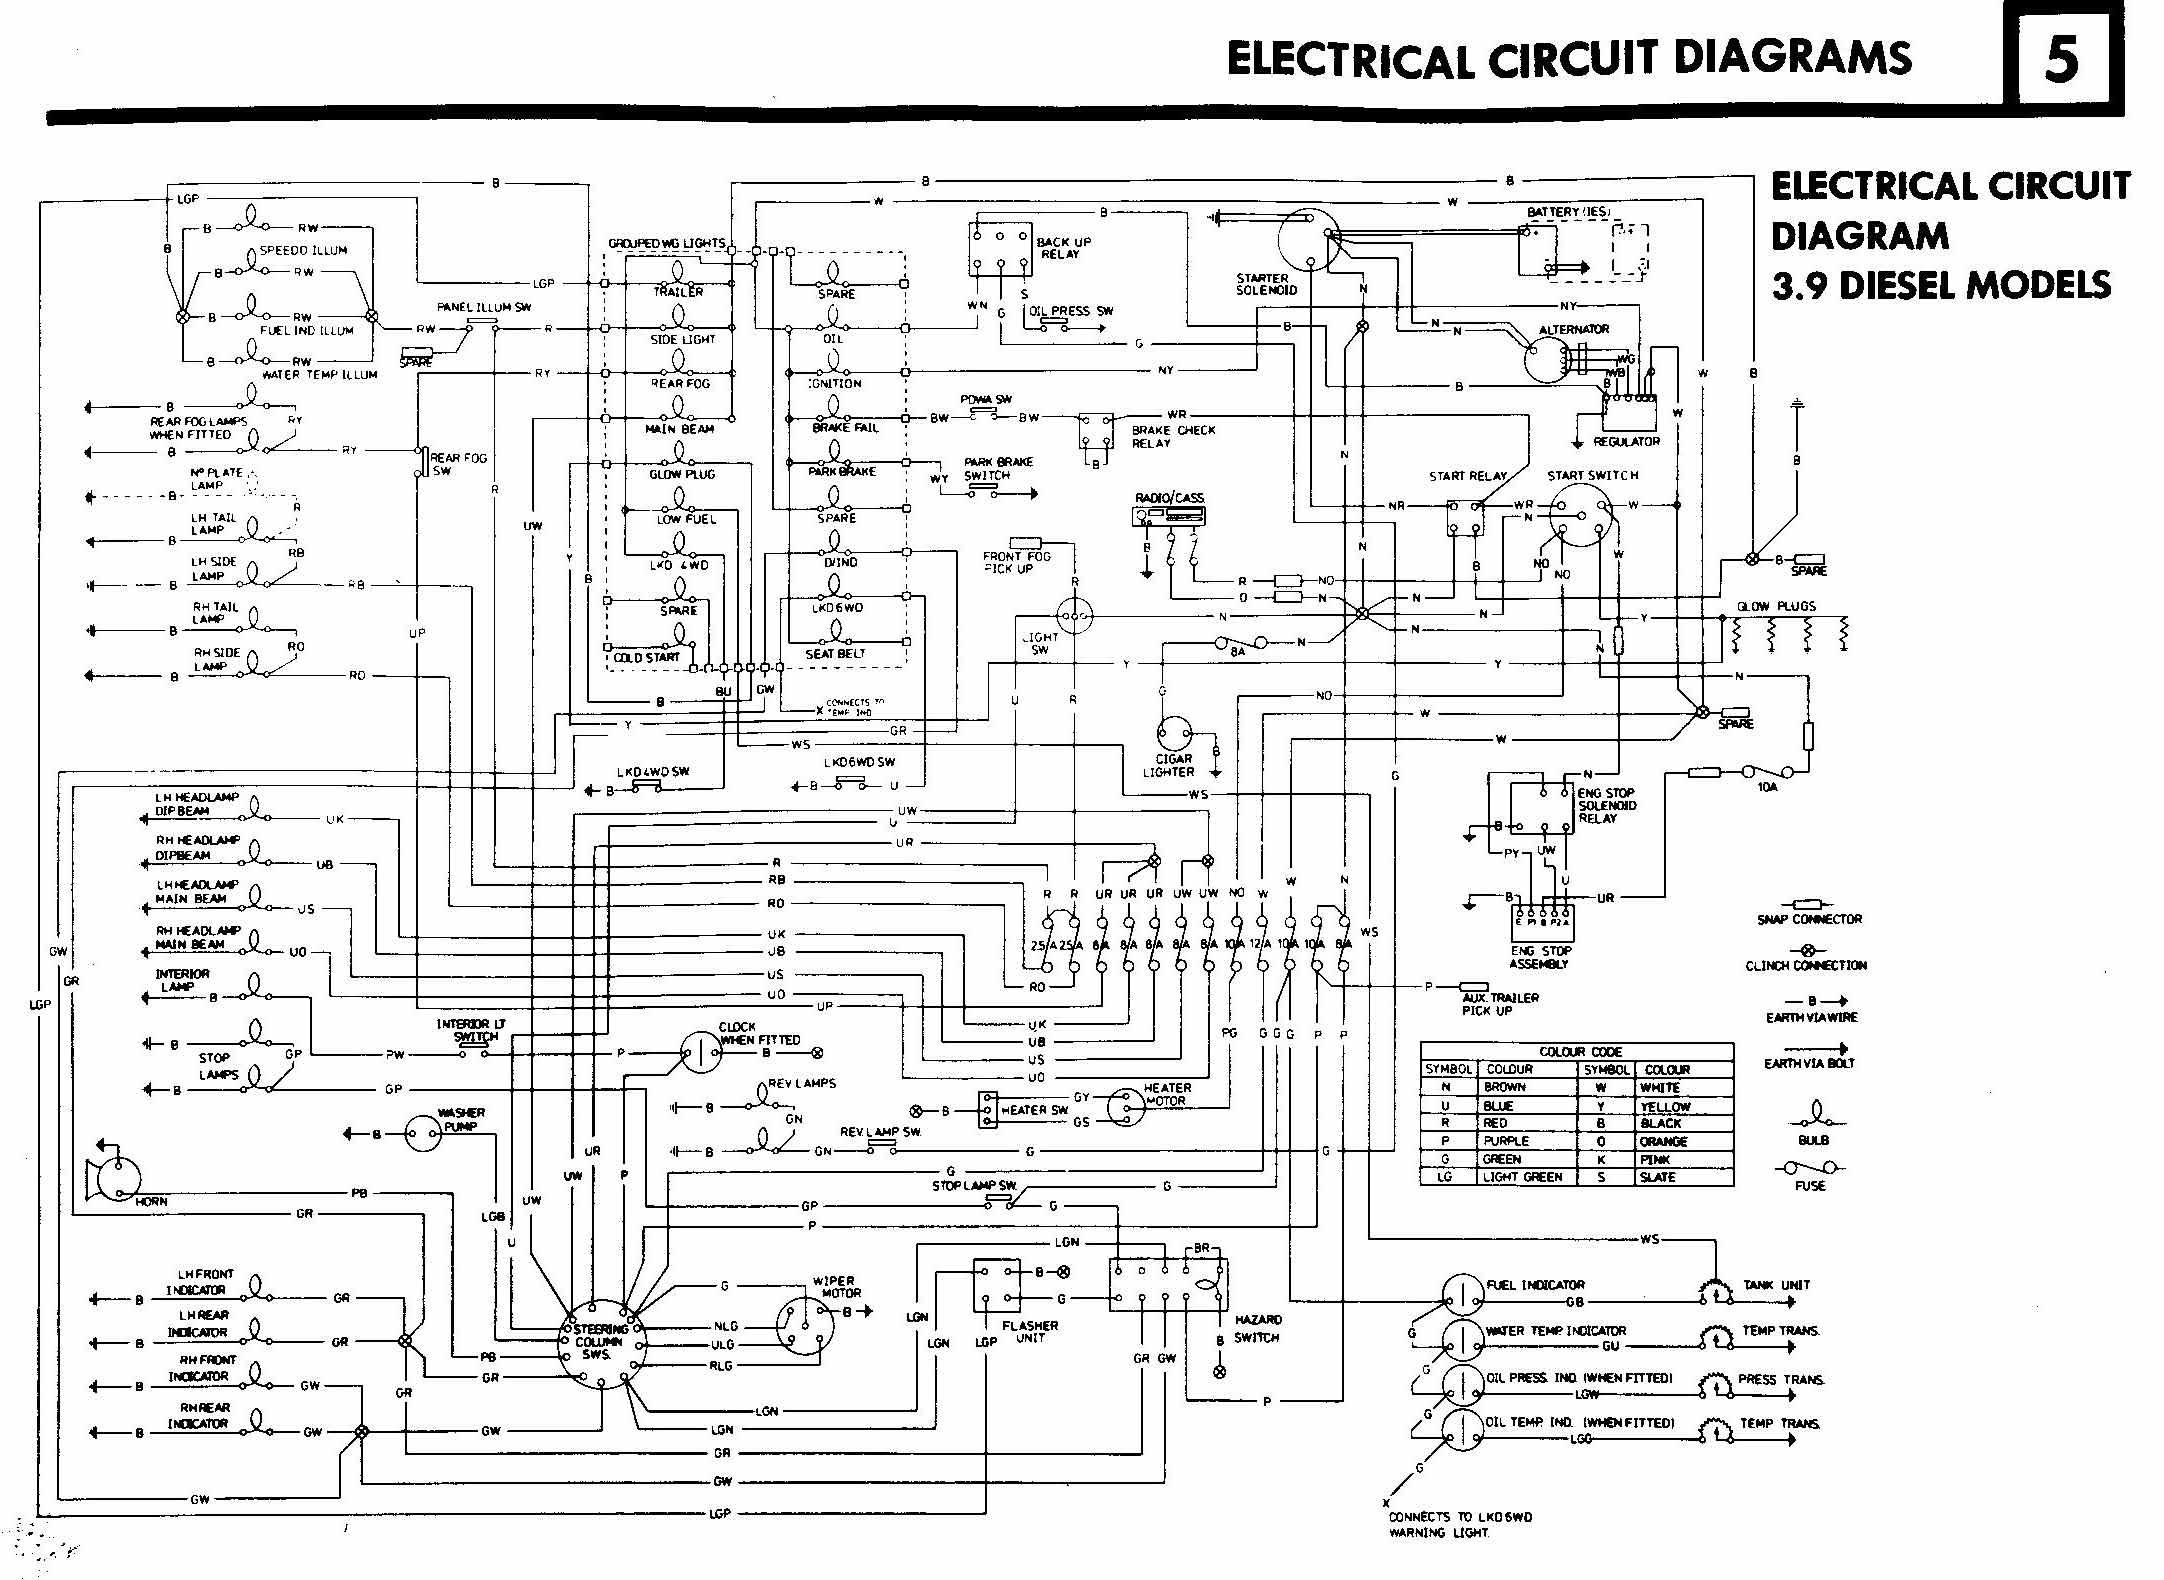 Circuit Diagram Rule